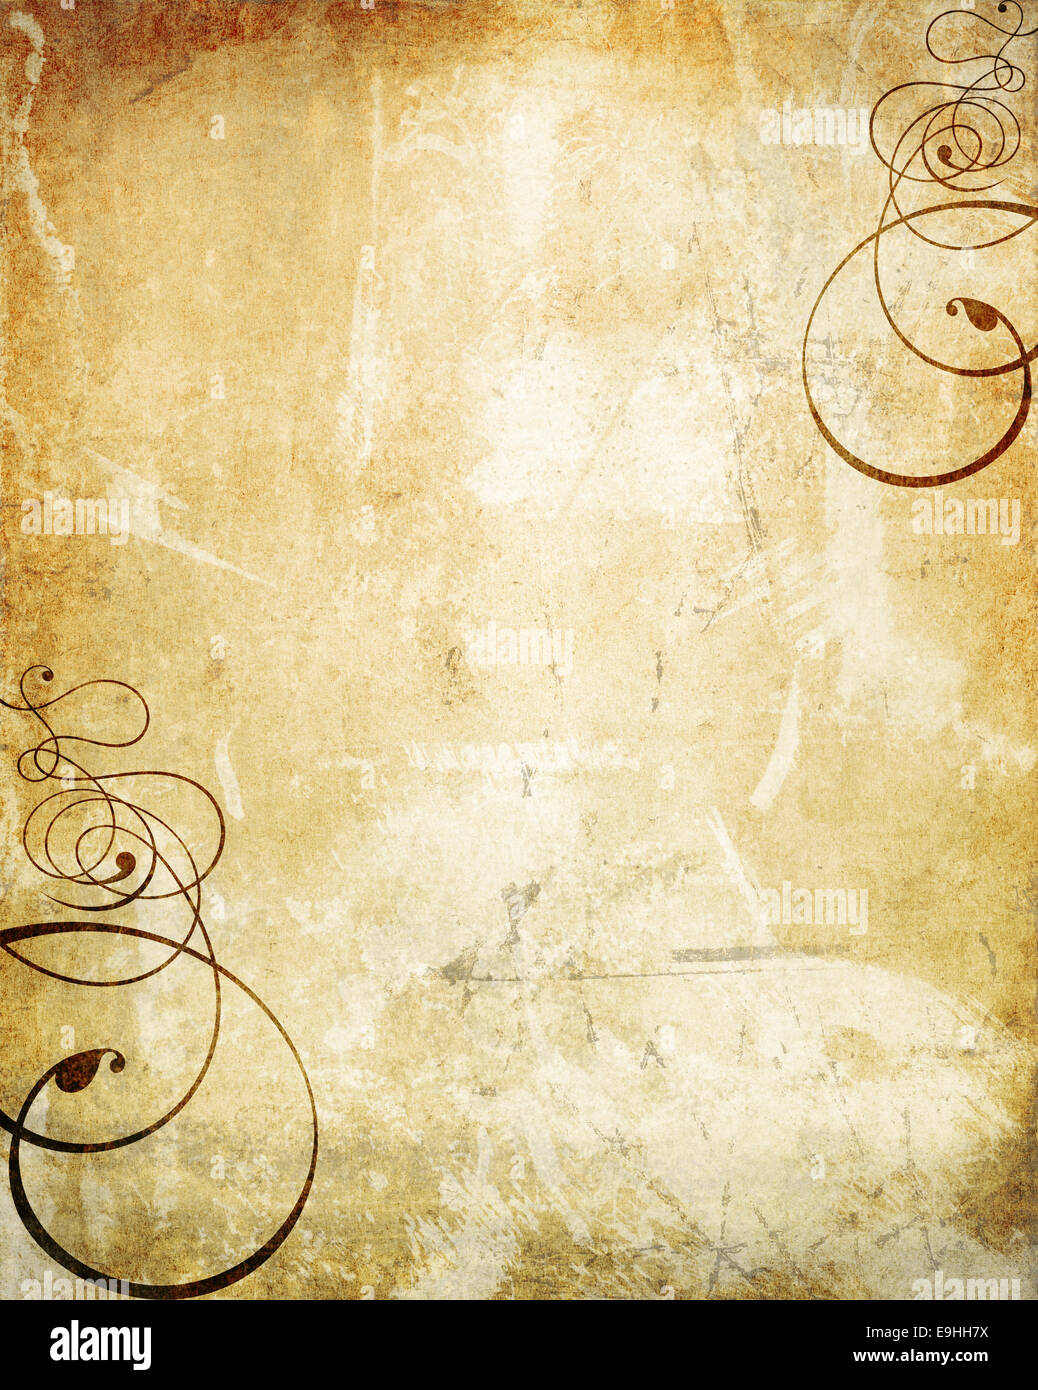 old wall texture with added swirls - Stock Image